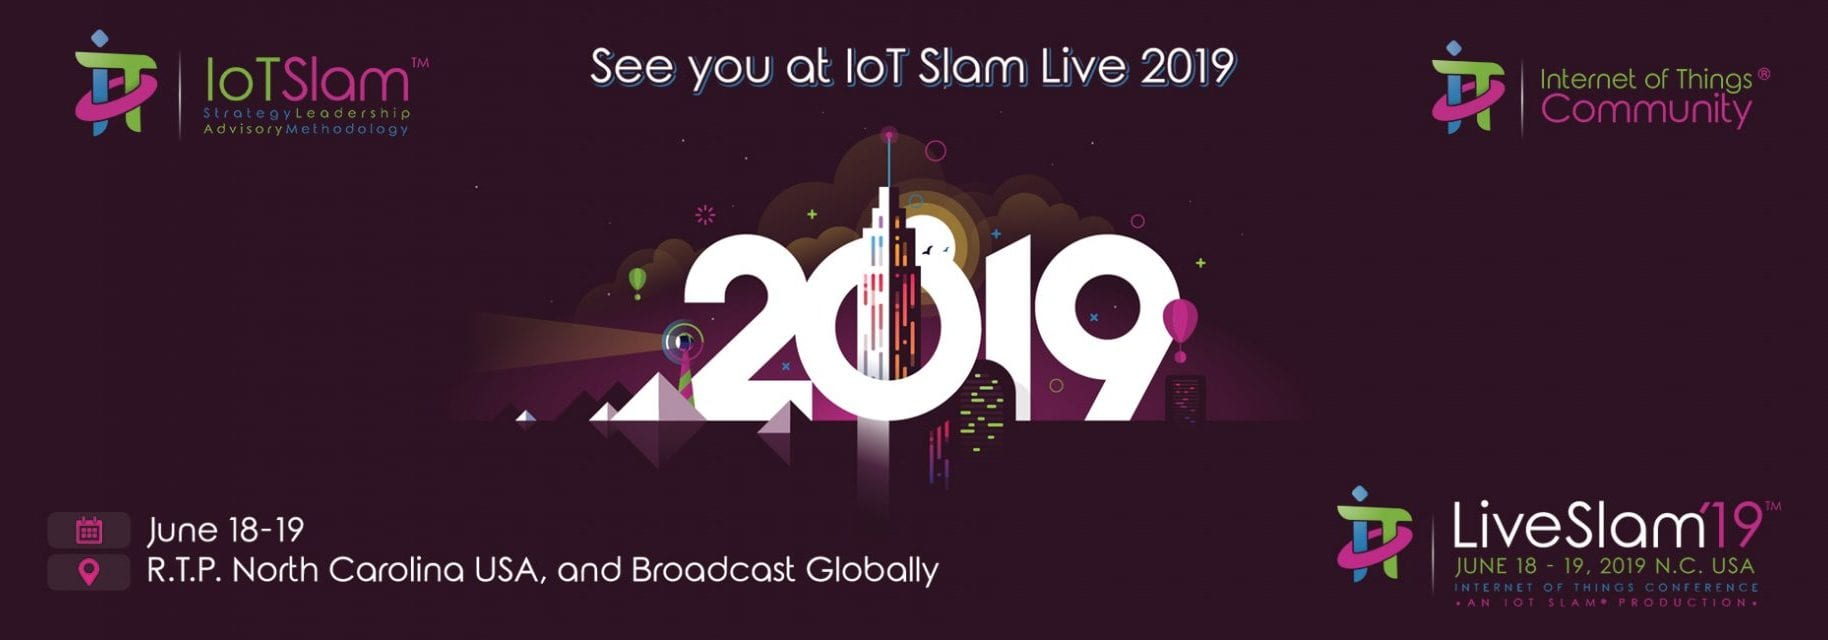 IoT Community IoT Slam Live 2019 IoT Conference Front Page Slider Full Logos